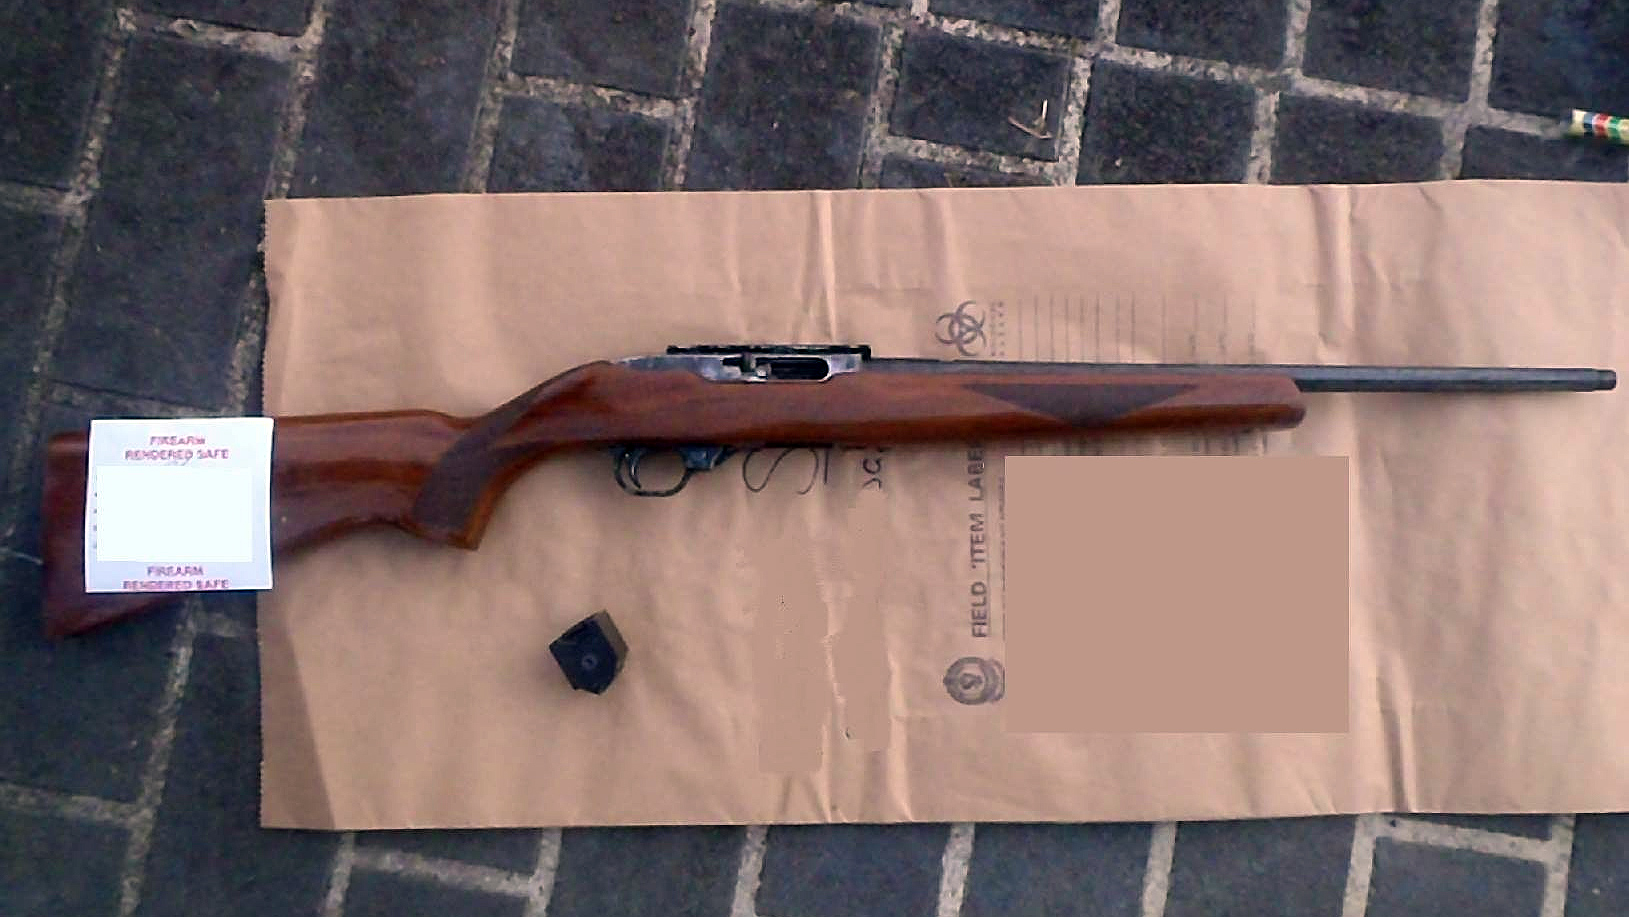 Ruger .22 rifle with 1000 rounds of ammo were seized